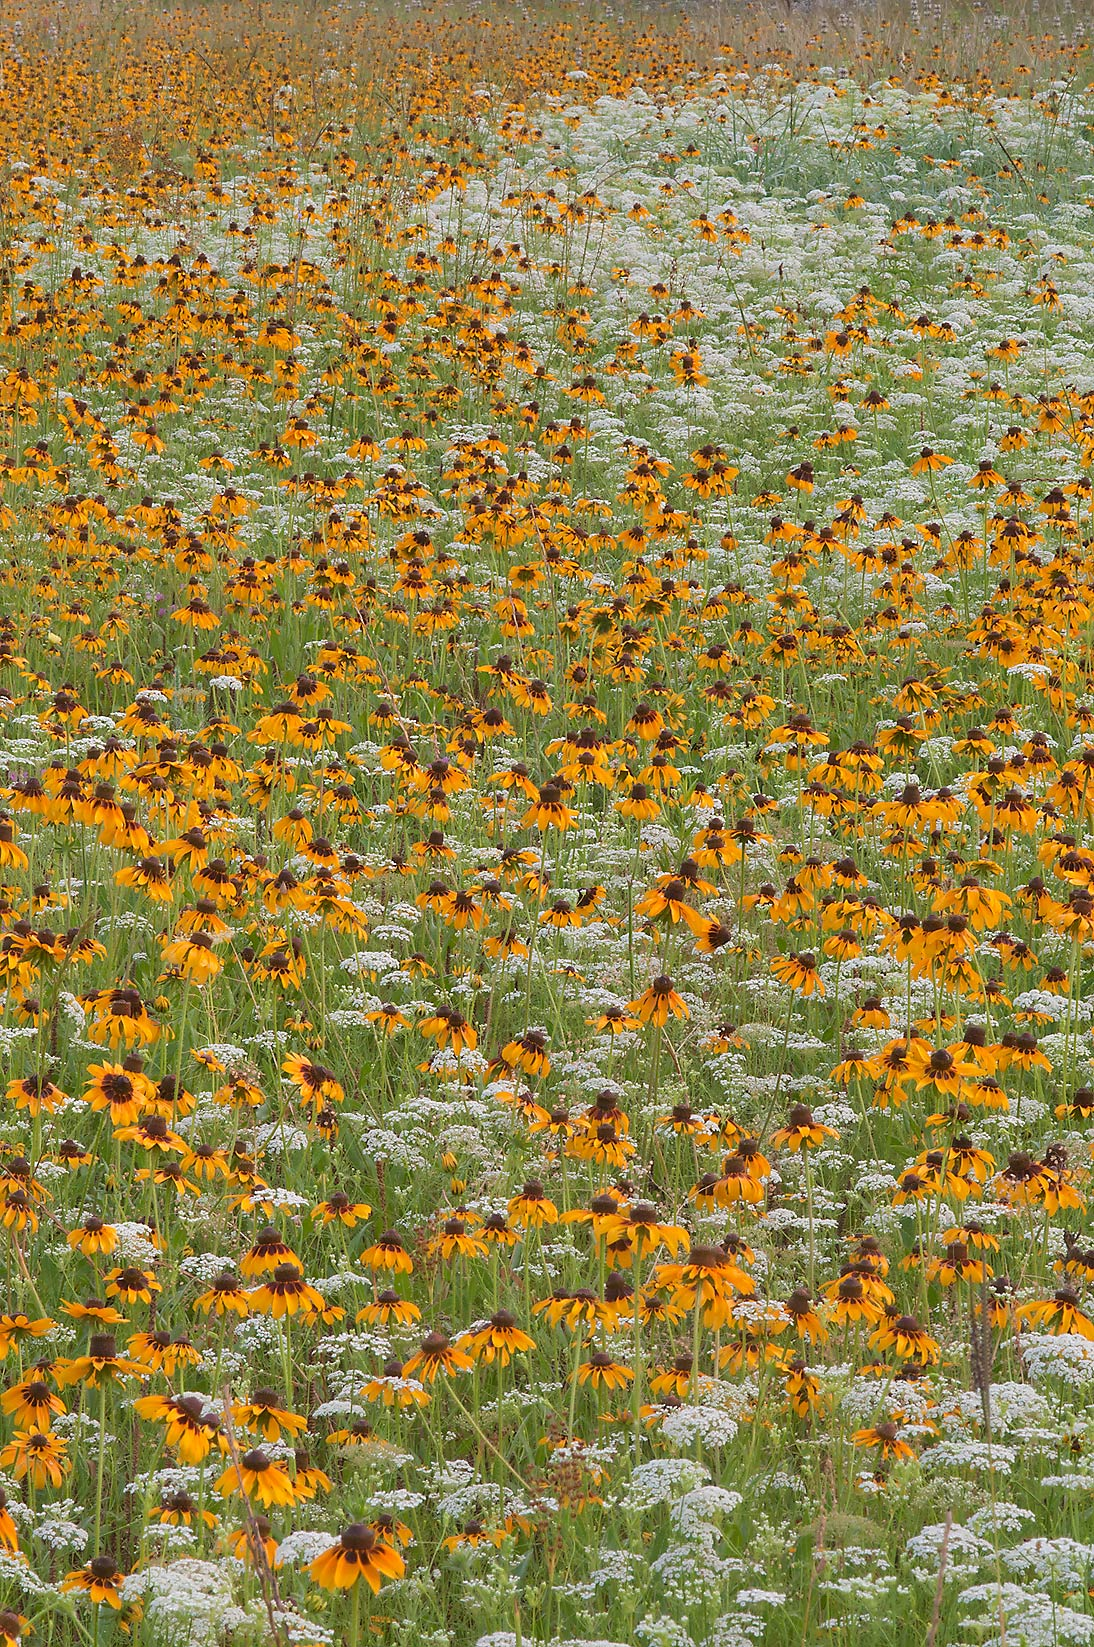 Field of Black eyed susans (Rudbeckia hirta) and...Creek Park. College Station, Texas